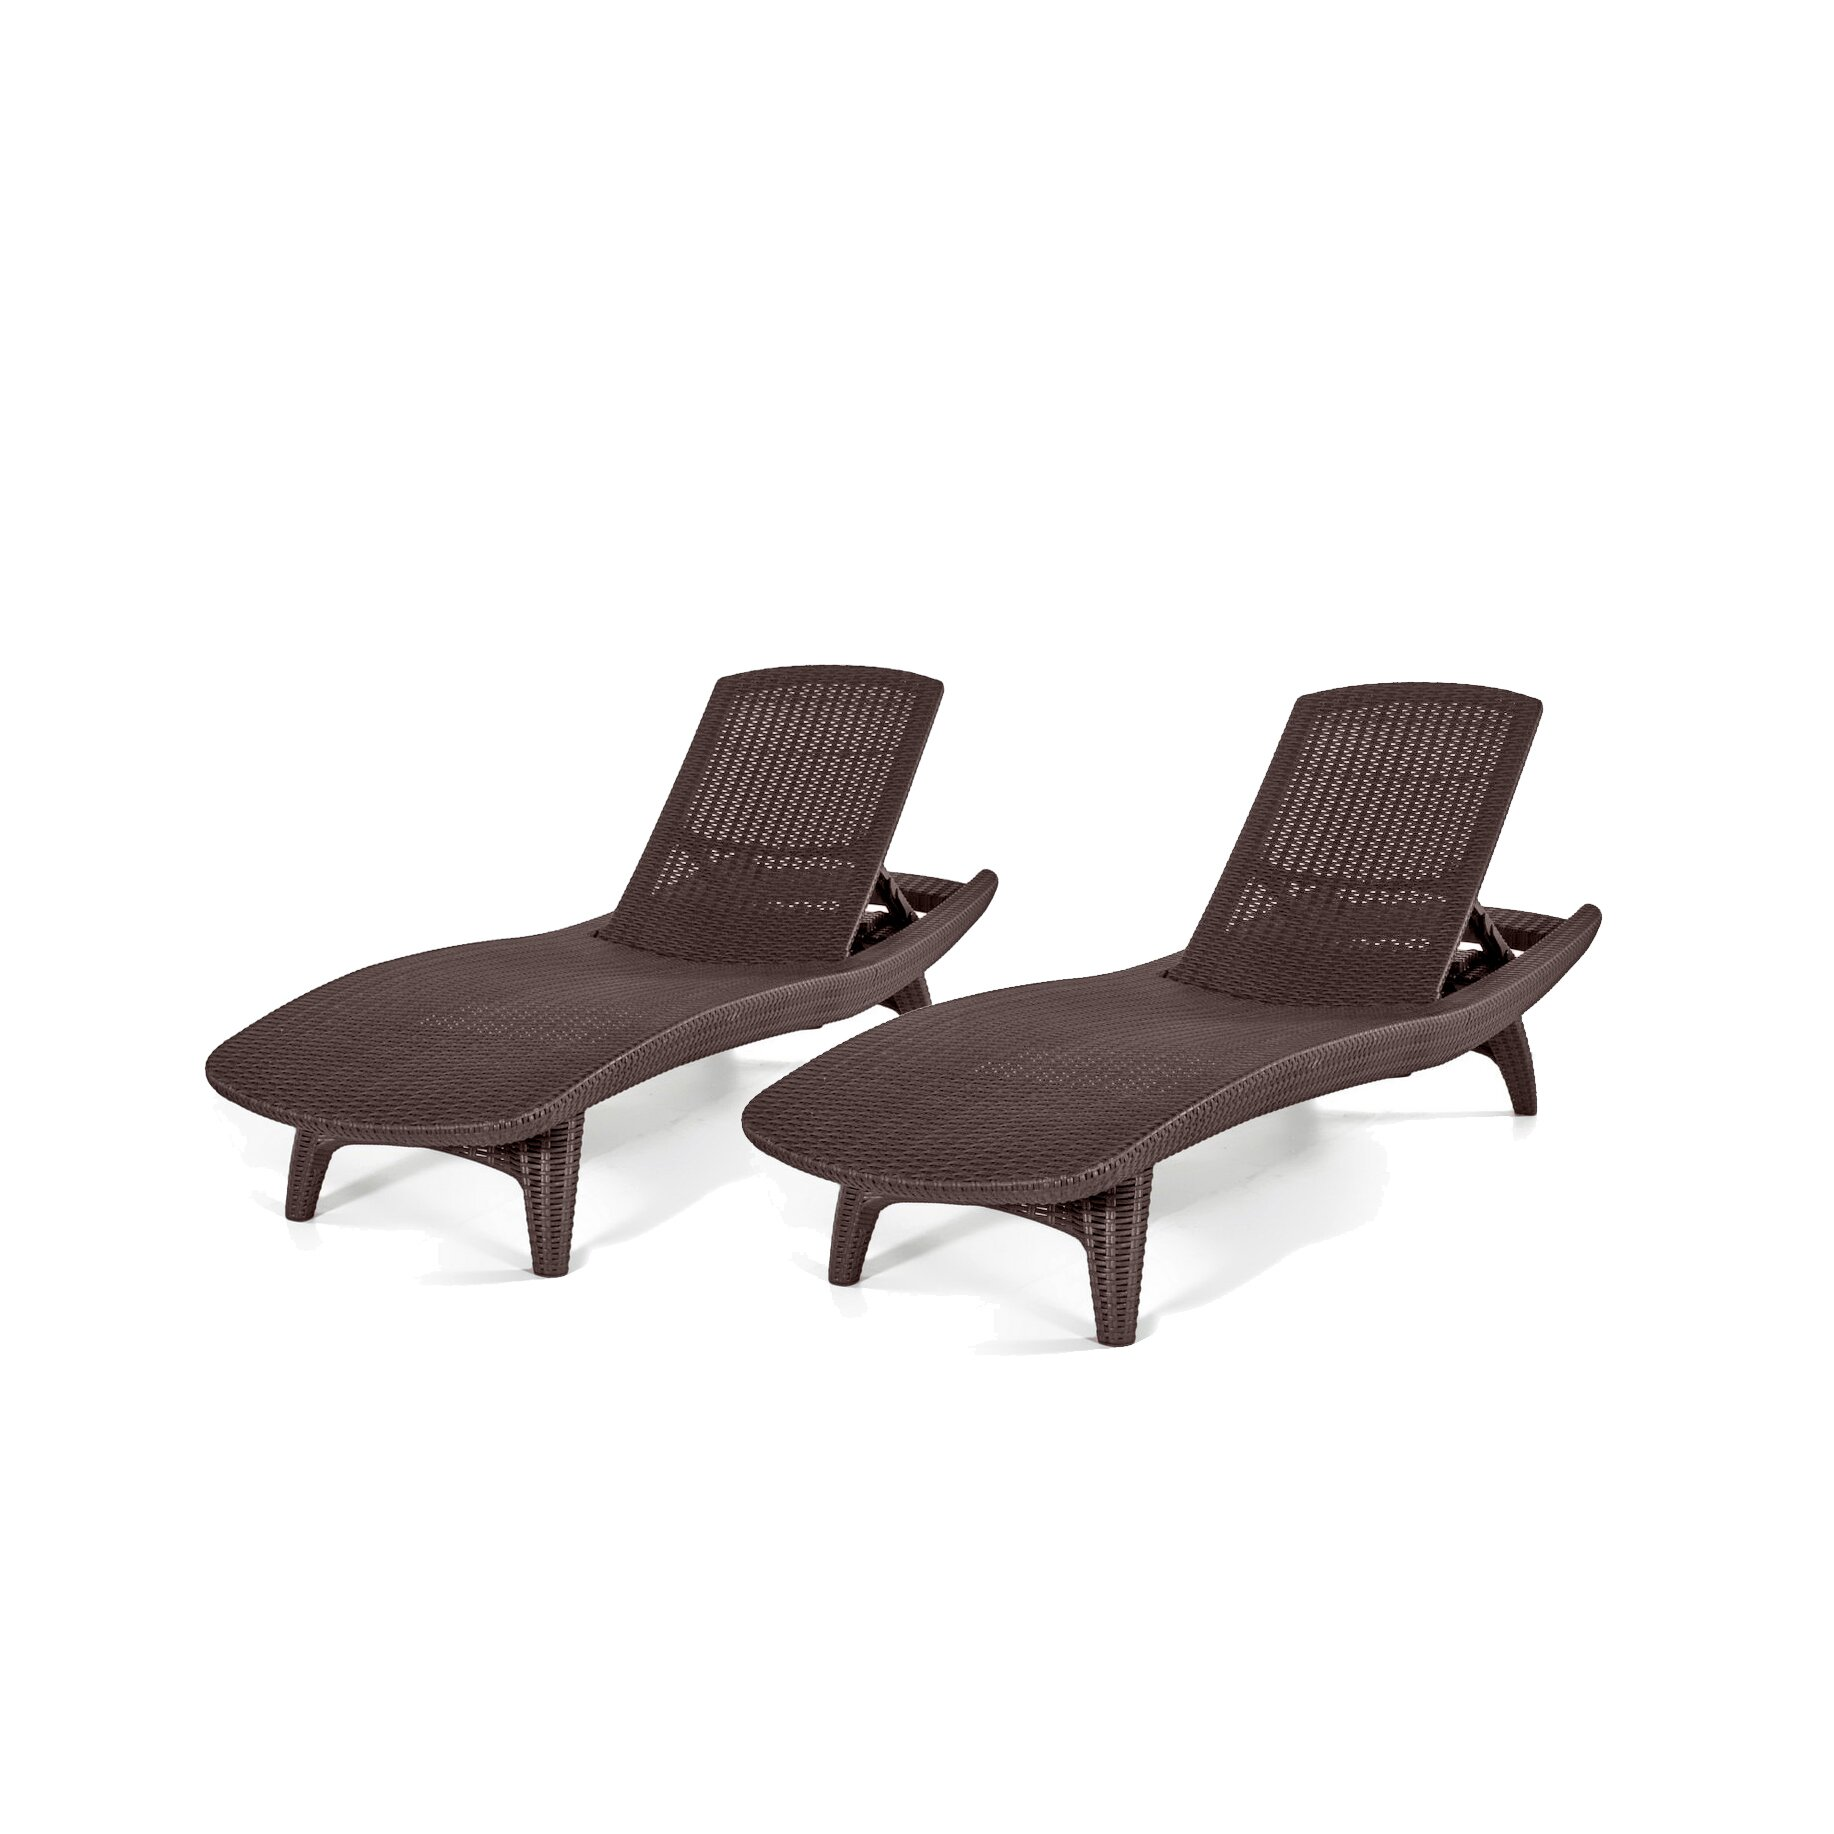 Brayden studio soma chaise lounge reviews wayfair for Chaise lounge bar